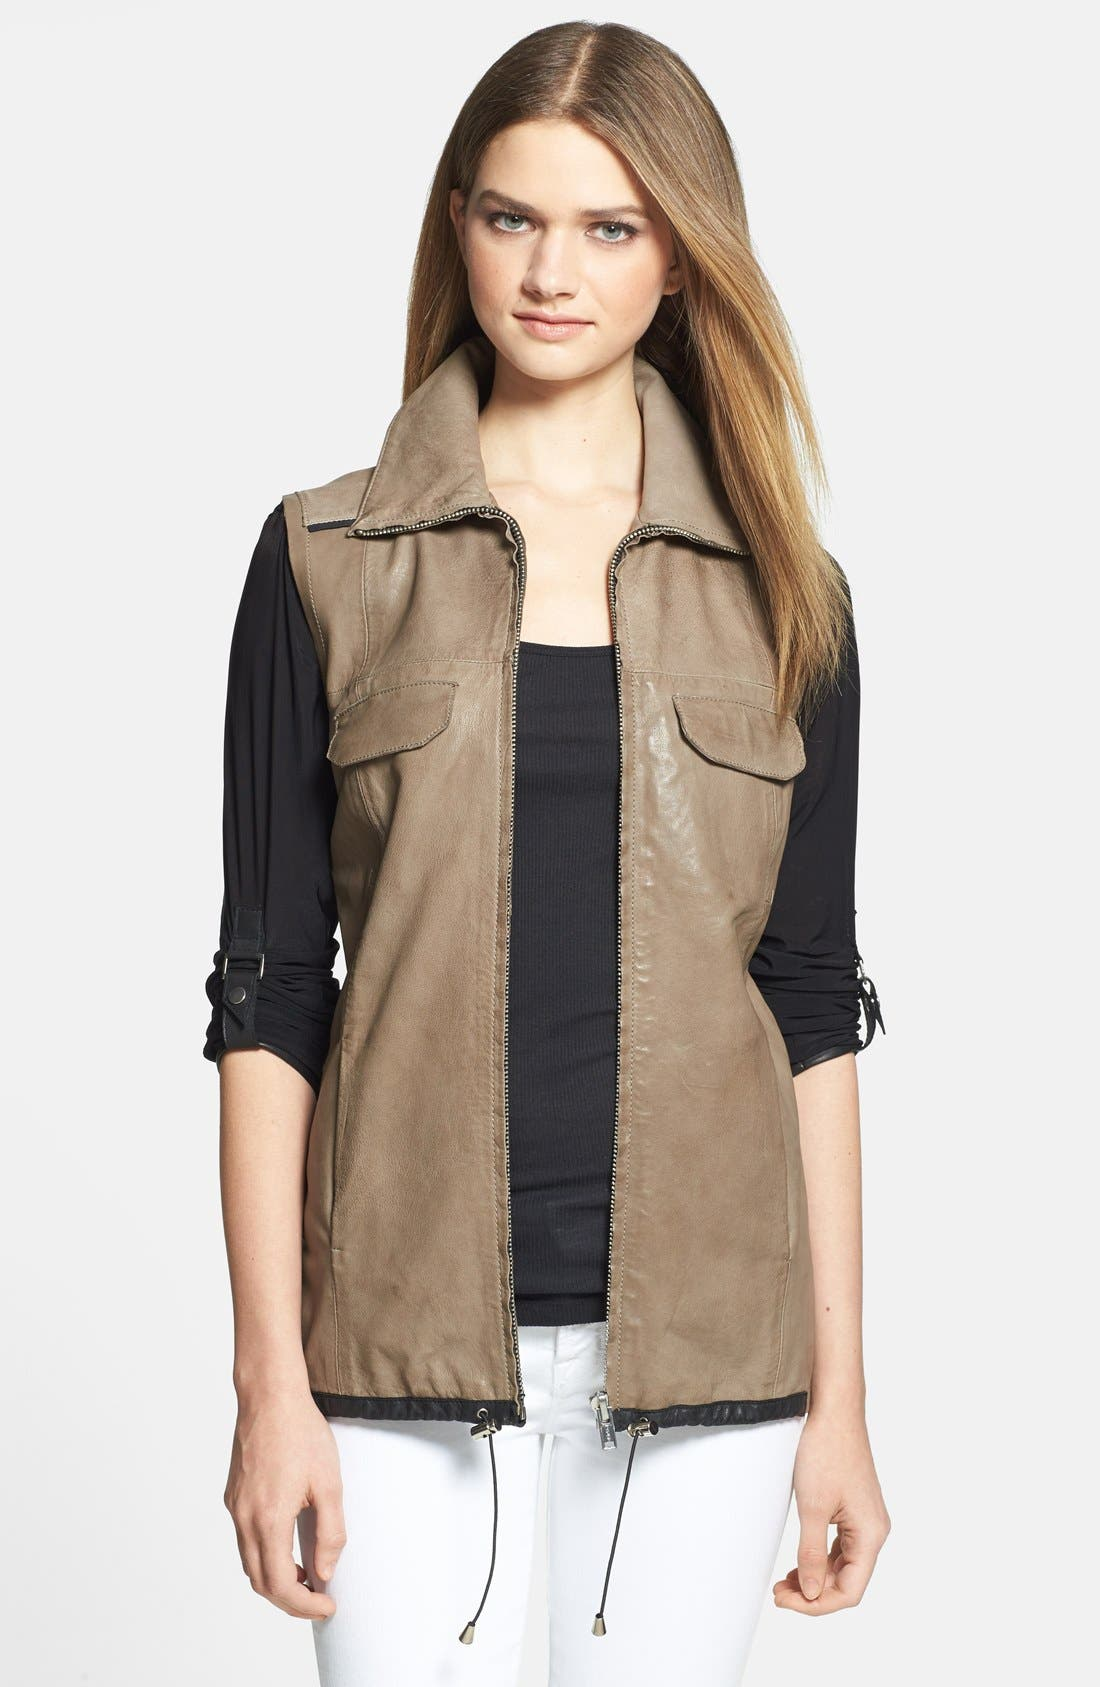 Alternate Image 1 Selected - LaMarque 'Esther' Leather Jacket with Removable Mesh Sleeves